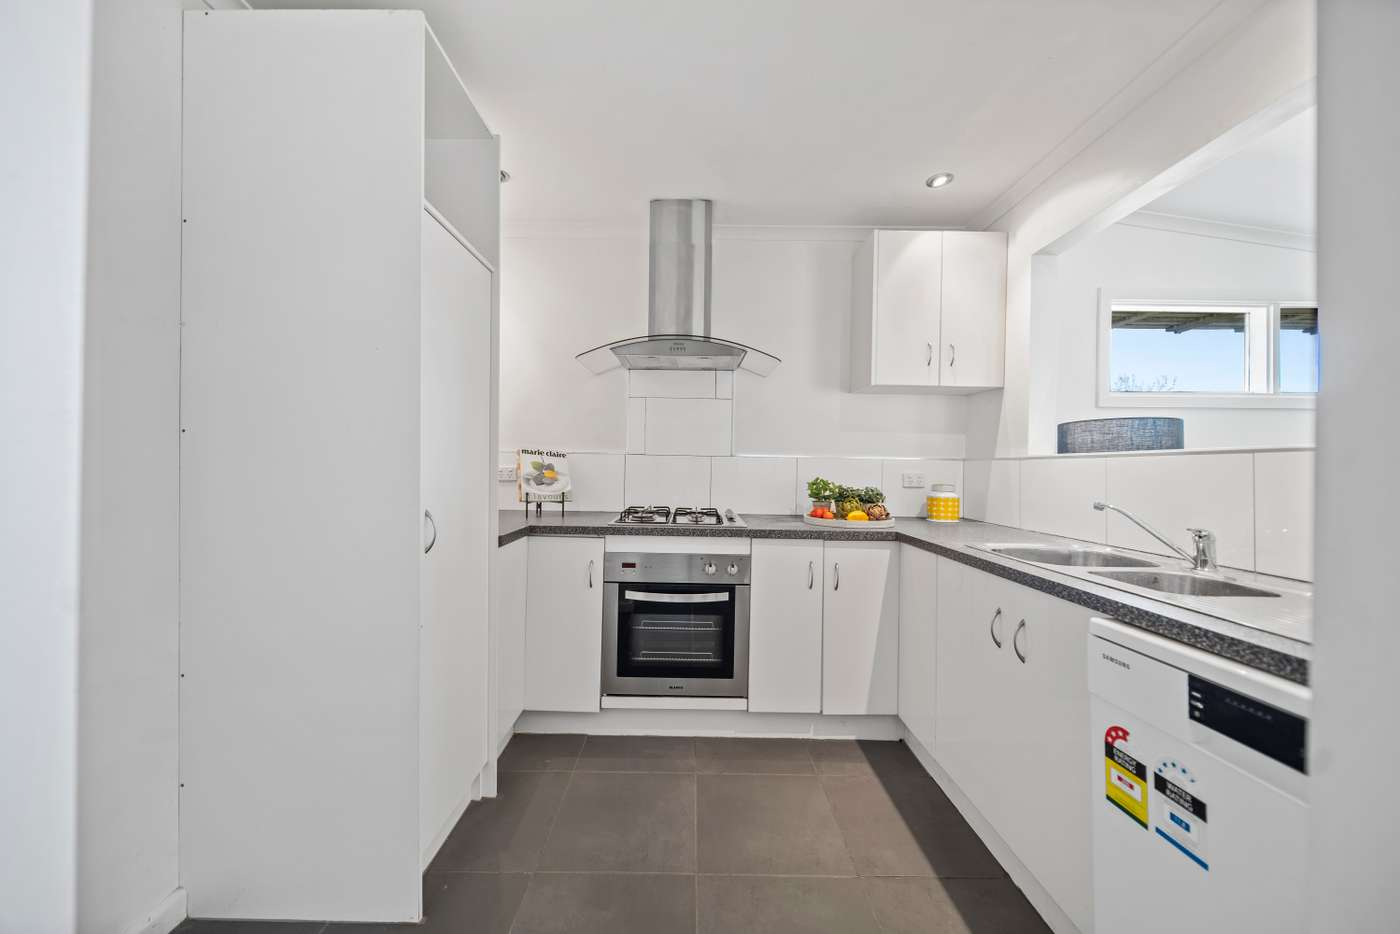 Sixth view of Homely house listing, 90 Somerville Street, Flora Hill VIC 3550